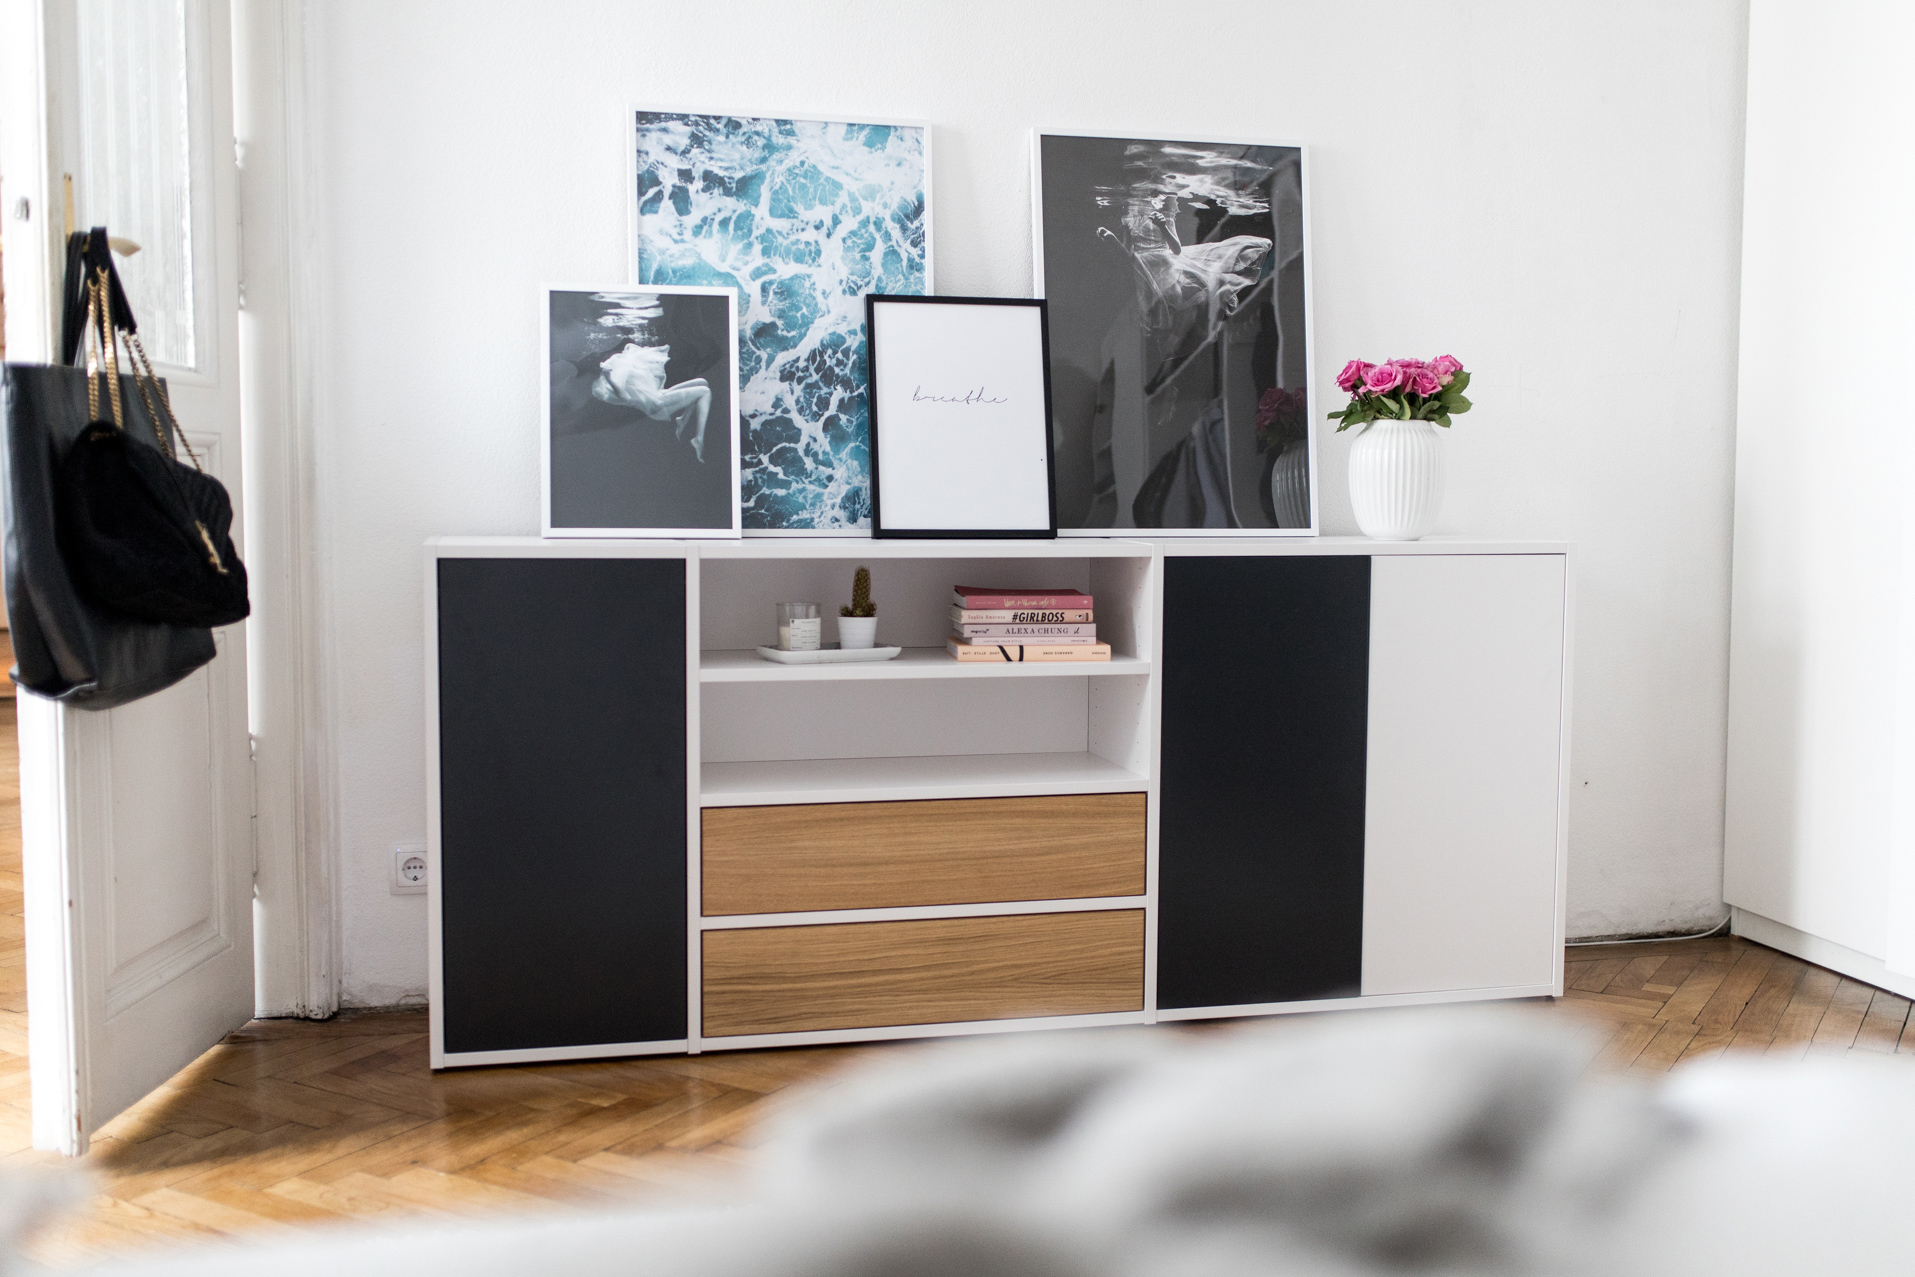 Wohnung Designen Home Update New Sideboard Berries Passion